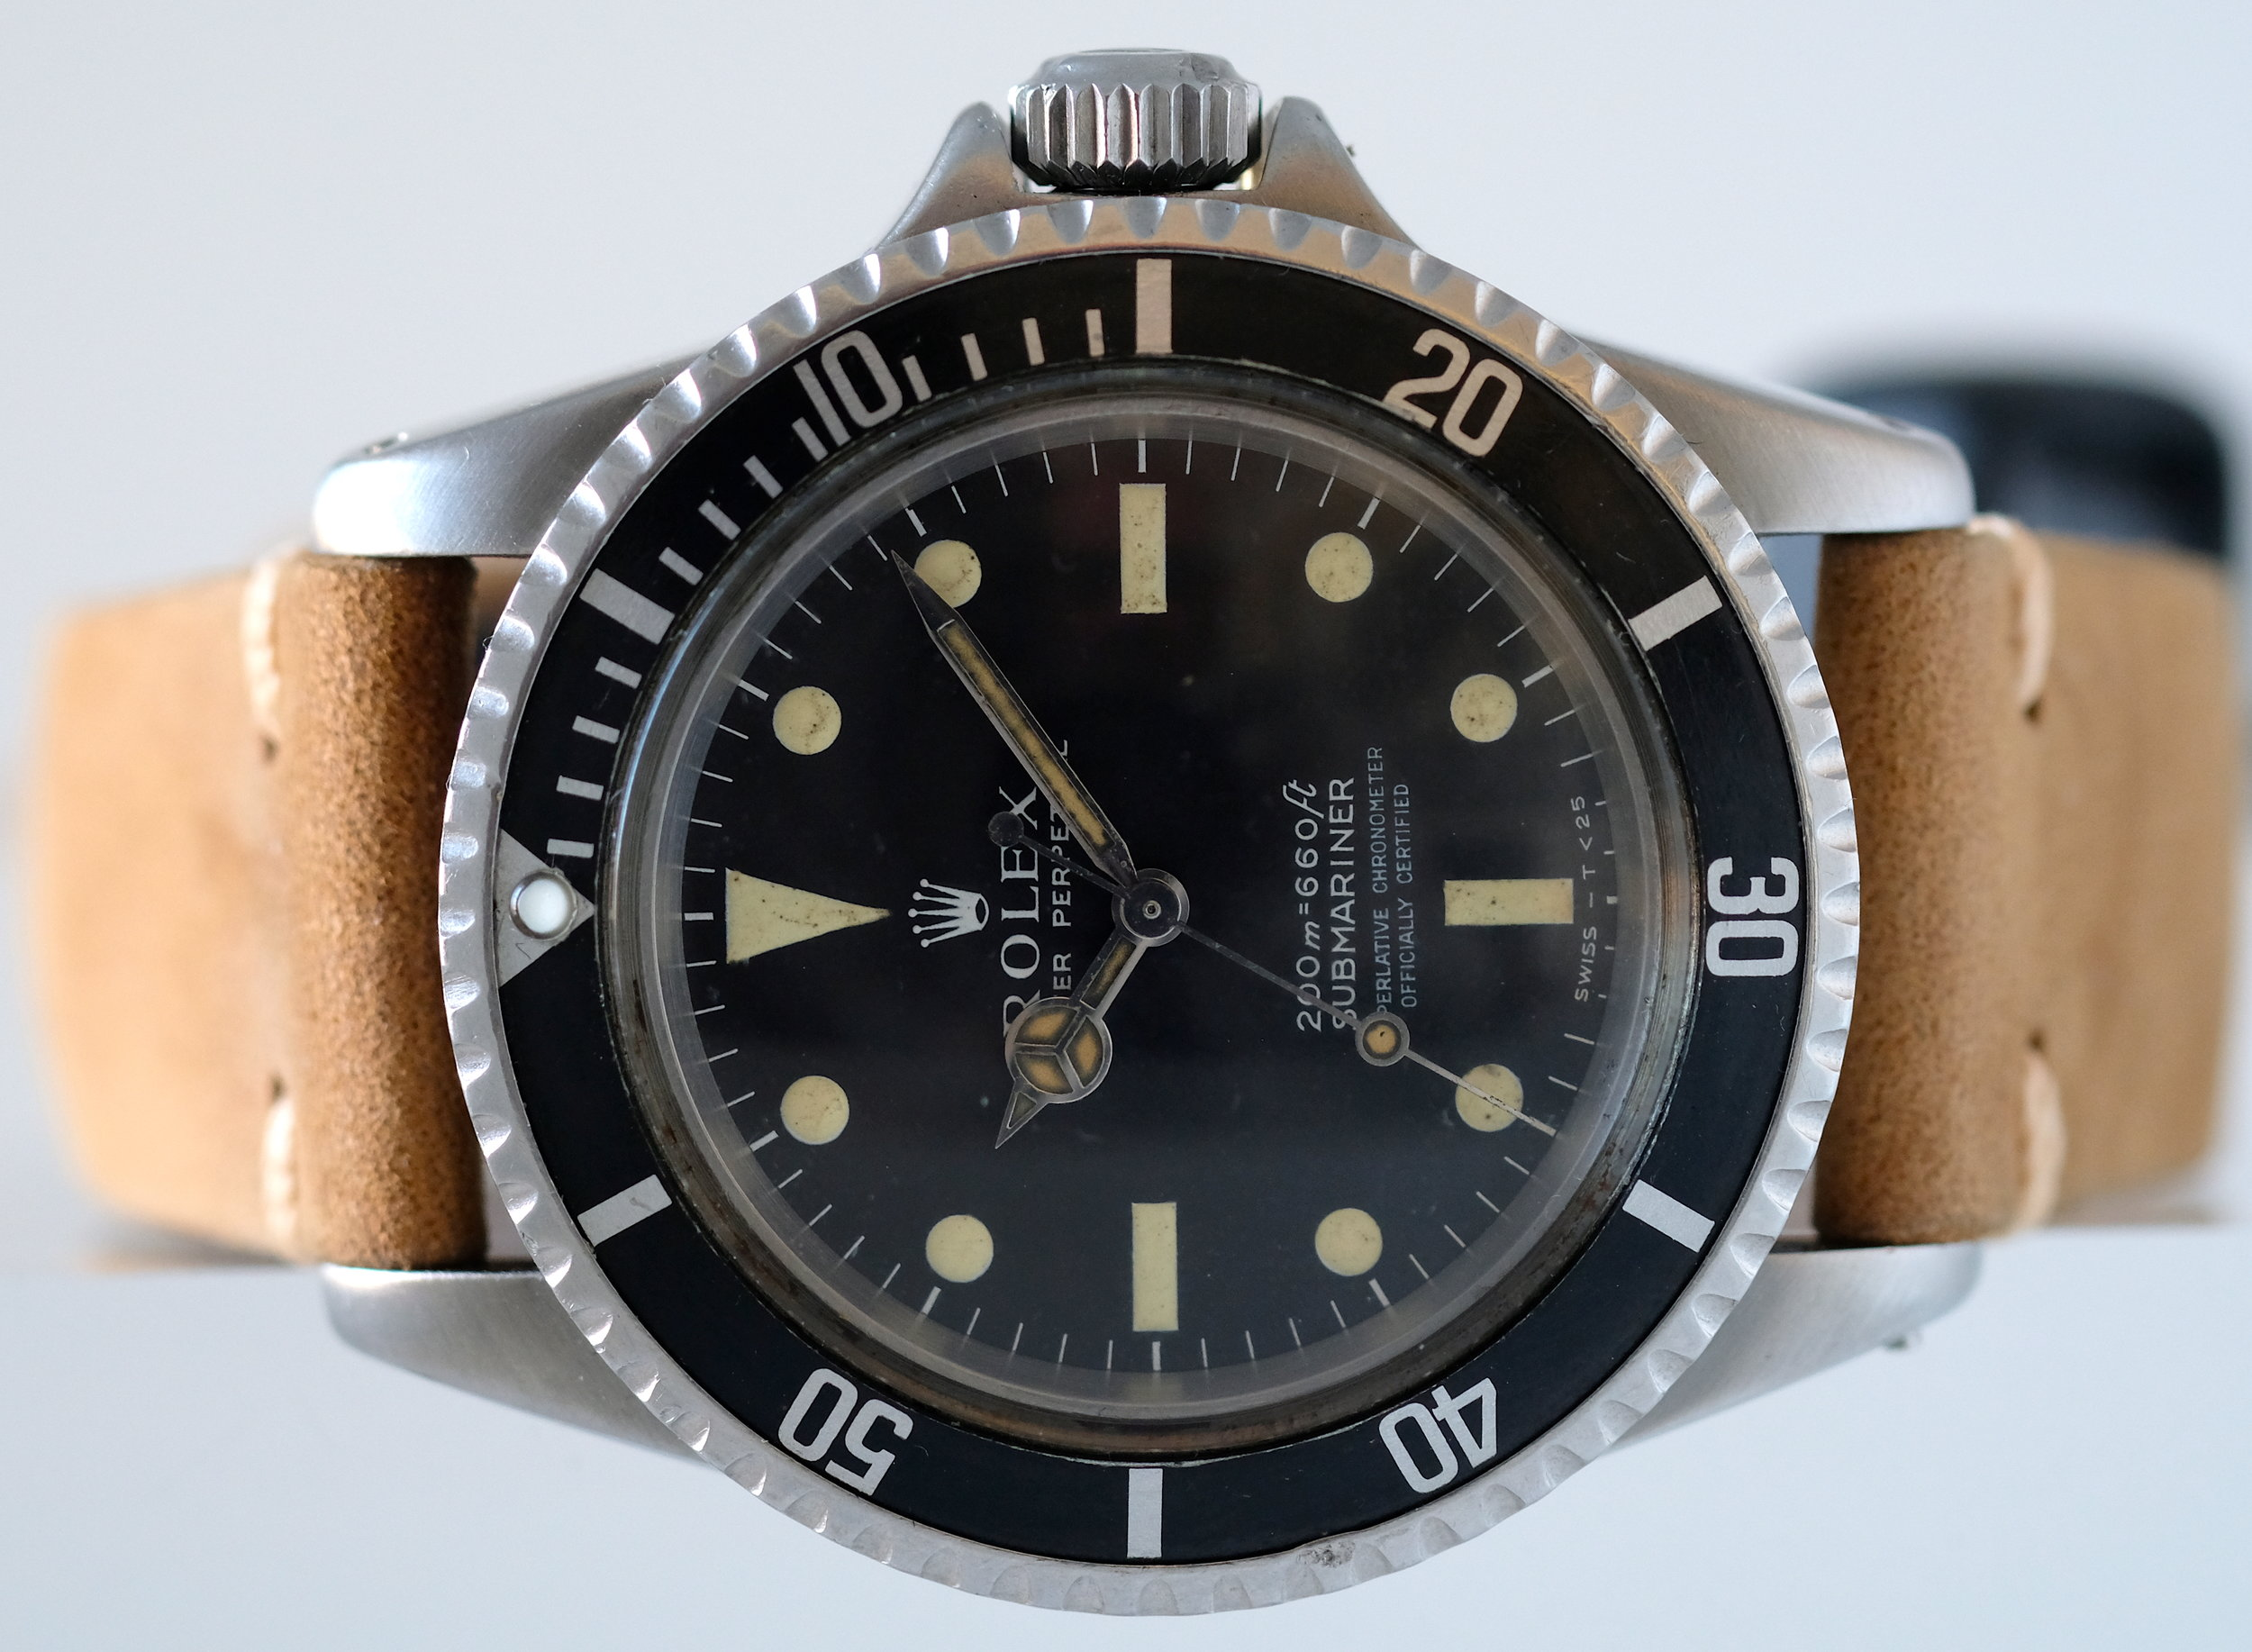 Rolex Submariner Ref. 5512 Meters First*  SOLD